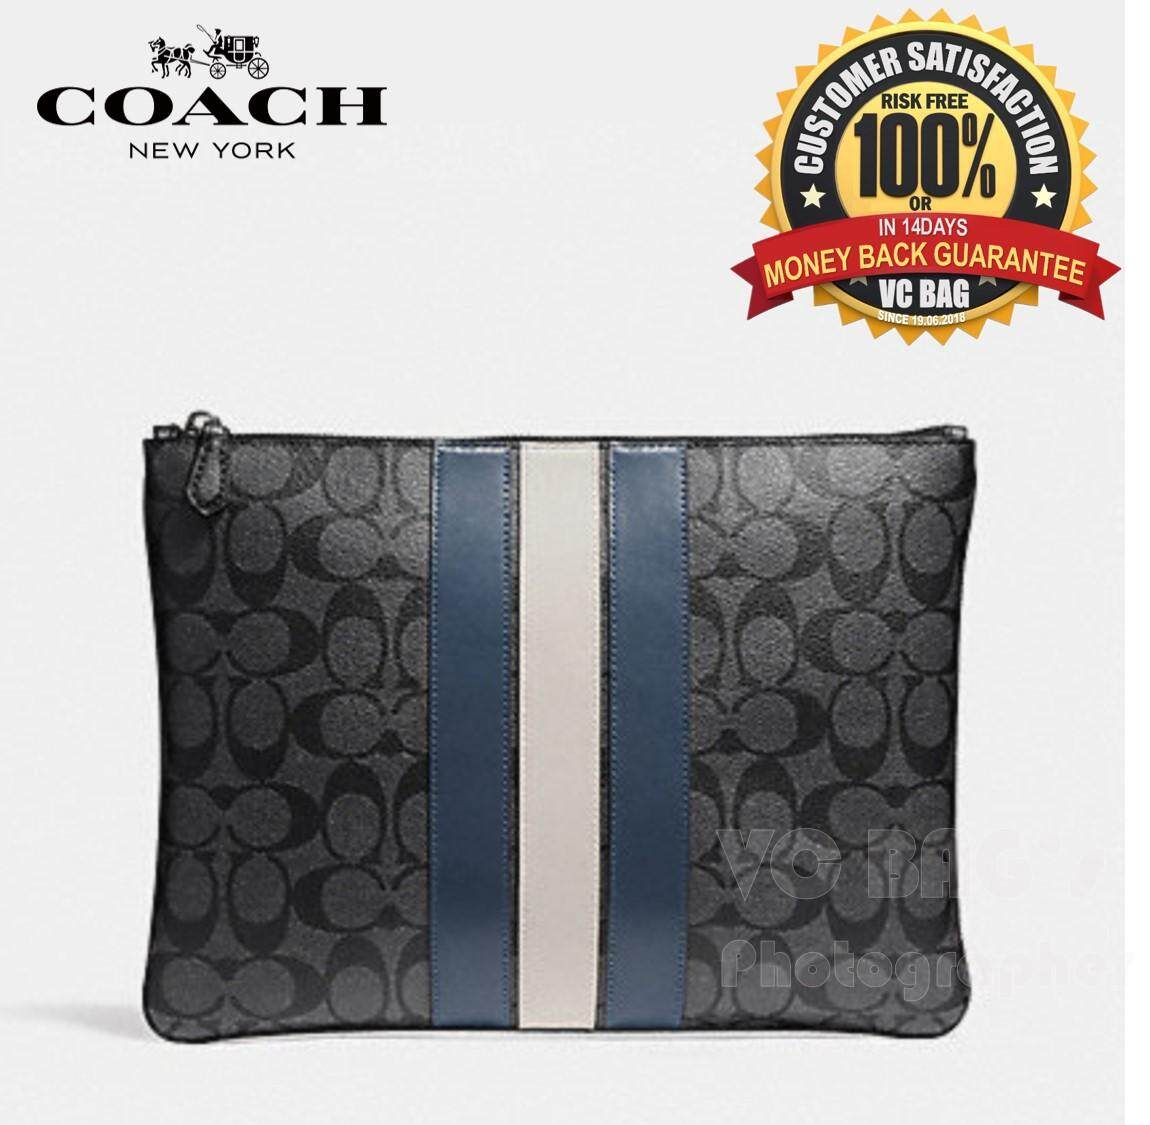 c38f8963e7 COACH F26071 Large Pouch Bag in Signature Canvas with Varsity Stripe   Midnight Nvy Denim